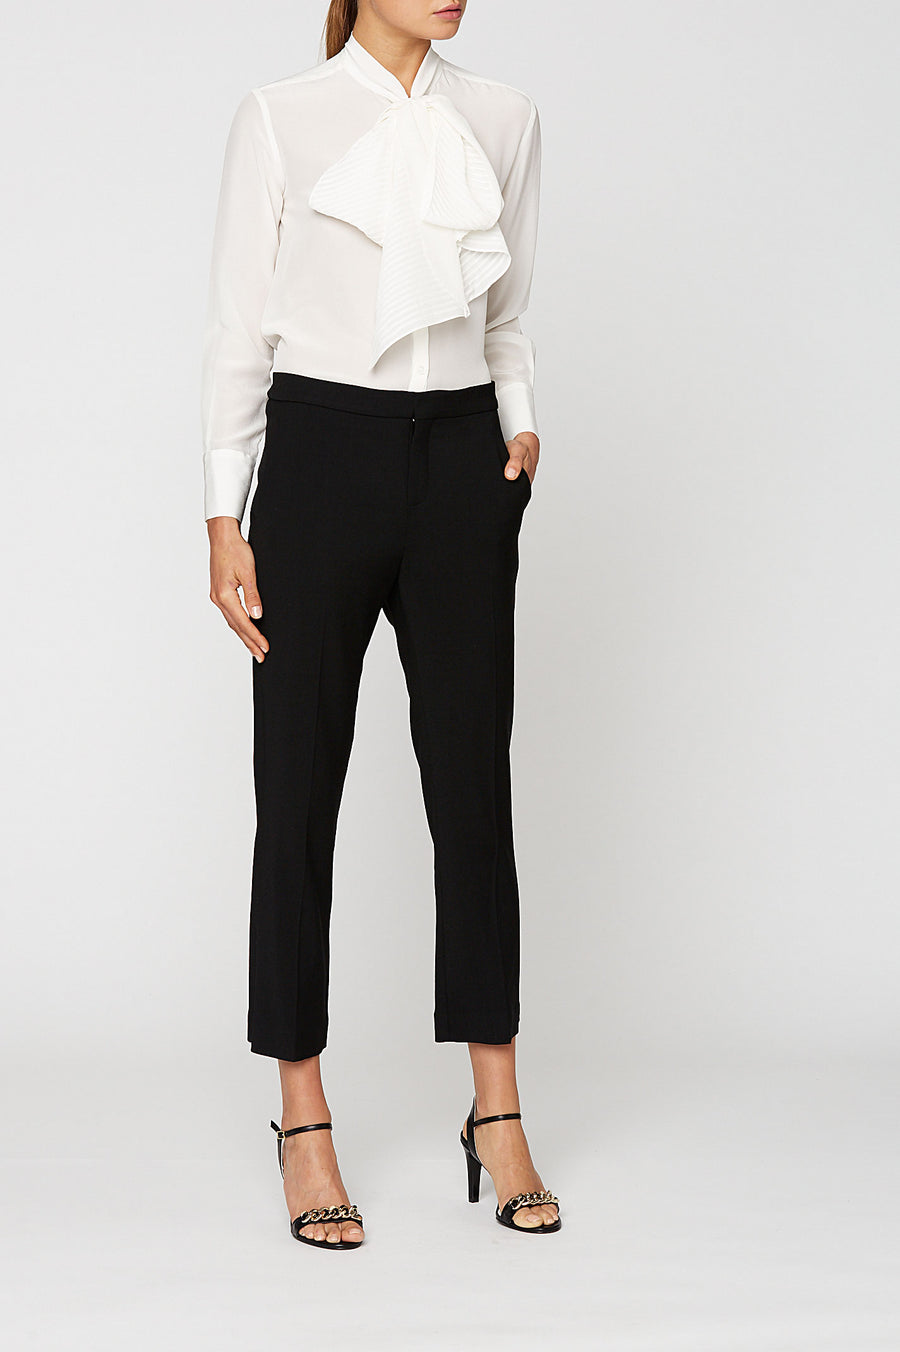 CDC PINTUCK TIE BLOUSE